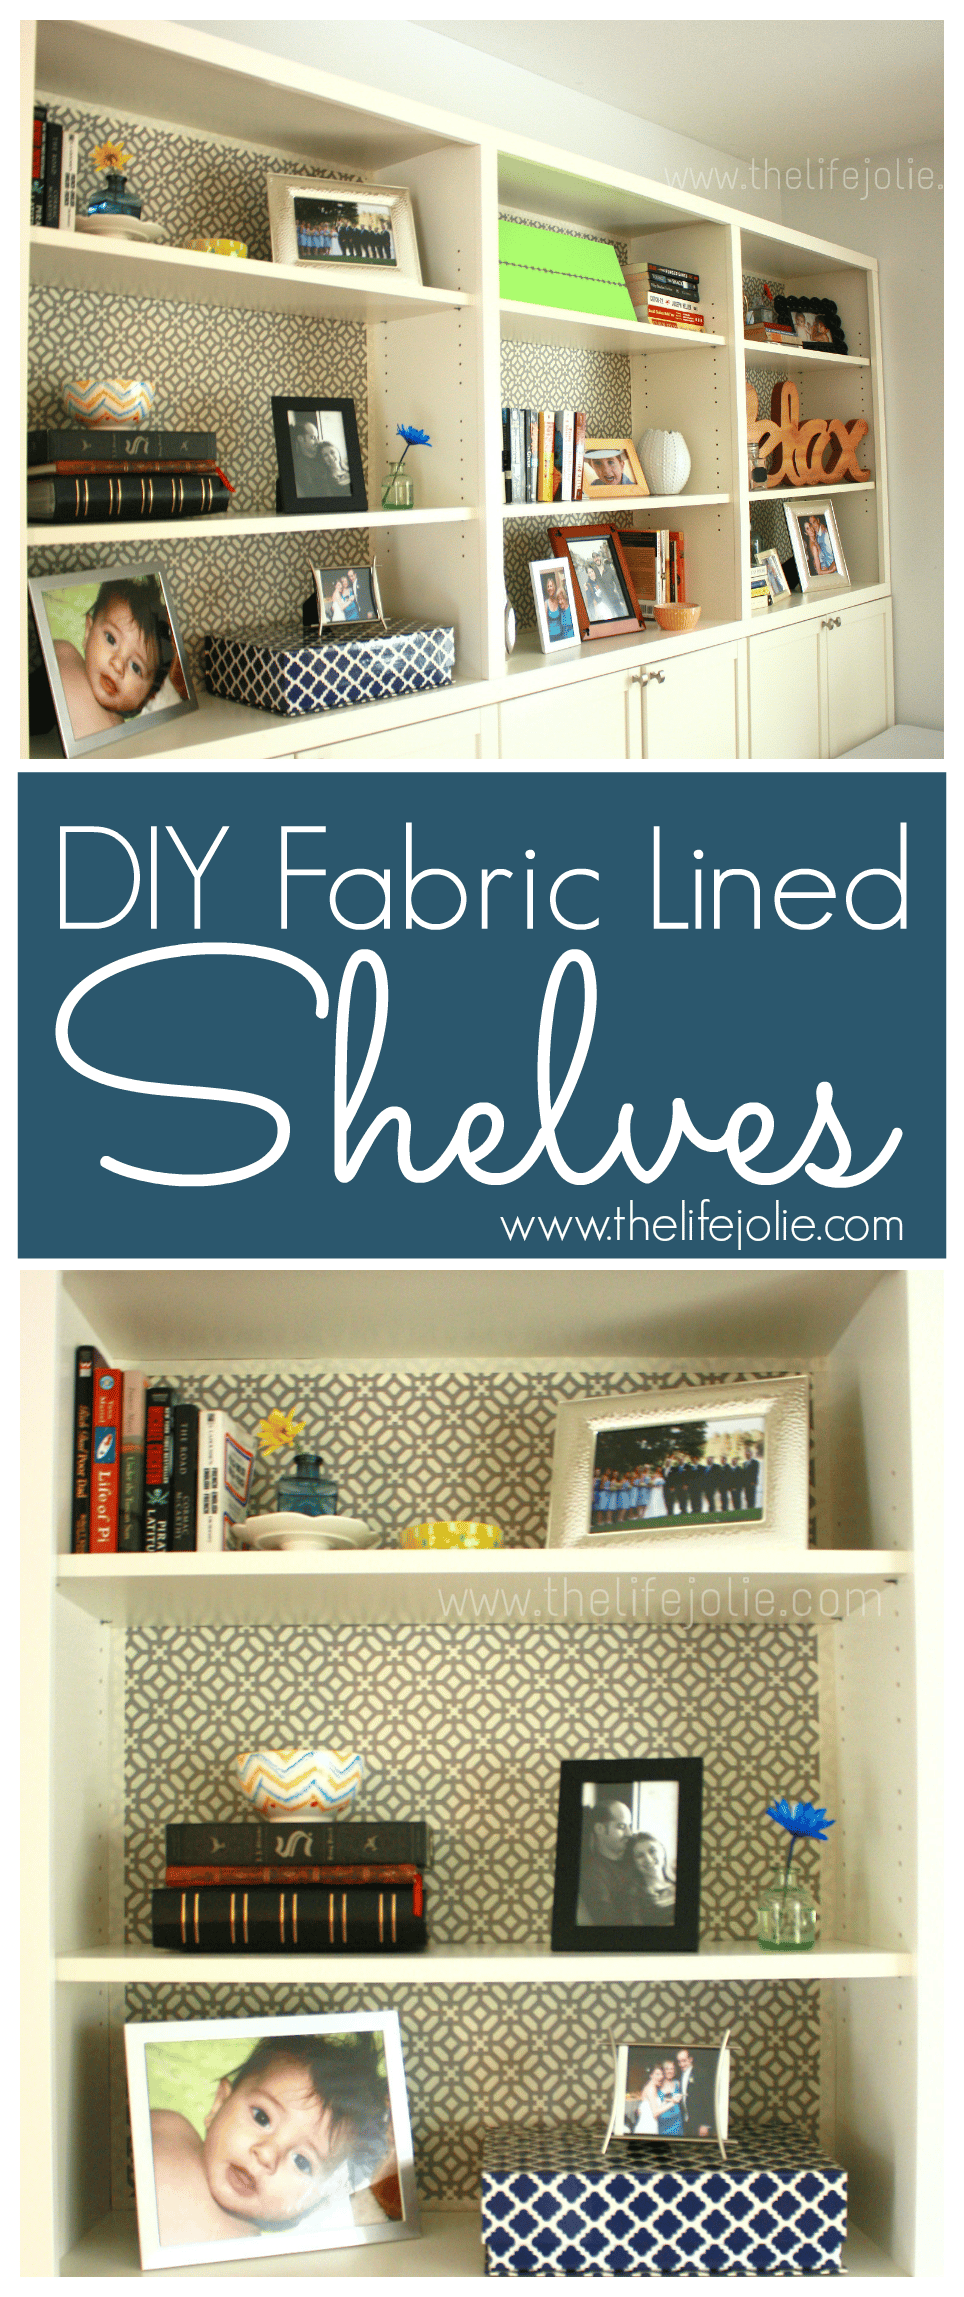 These fabric lined shelves are great way to add new life to boring shelves and bookcases- the great thing is that there are notes on what parts of the project worked and what parts can be done better next time. Click the photo to read more.